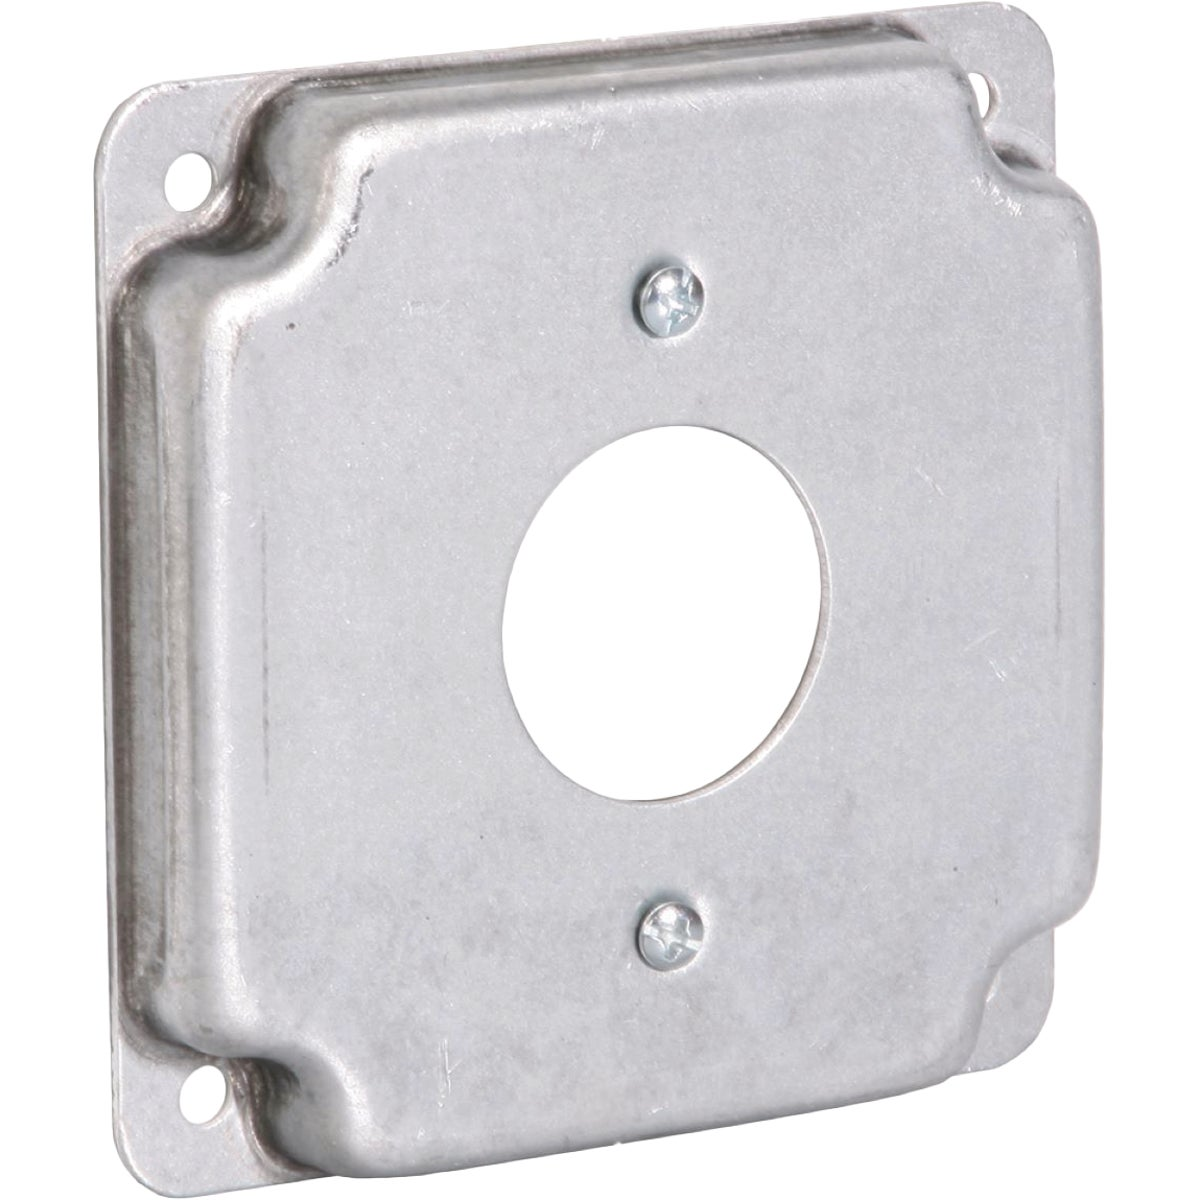 "4"" SQUARE COVER - RS11-30 by Thomas & Betts"